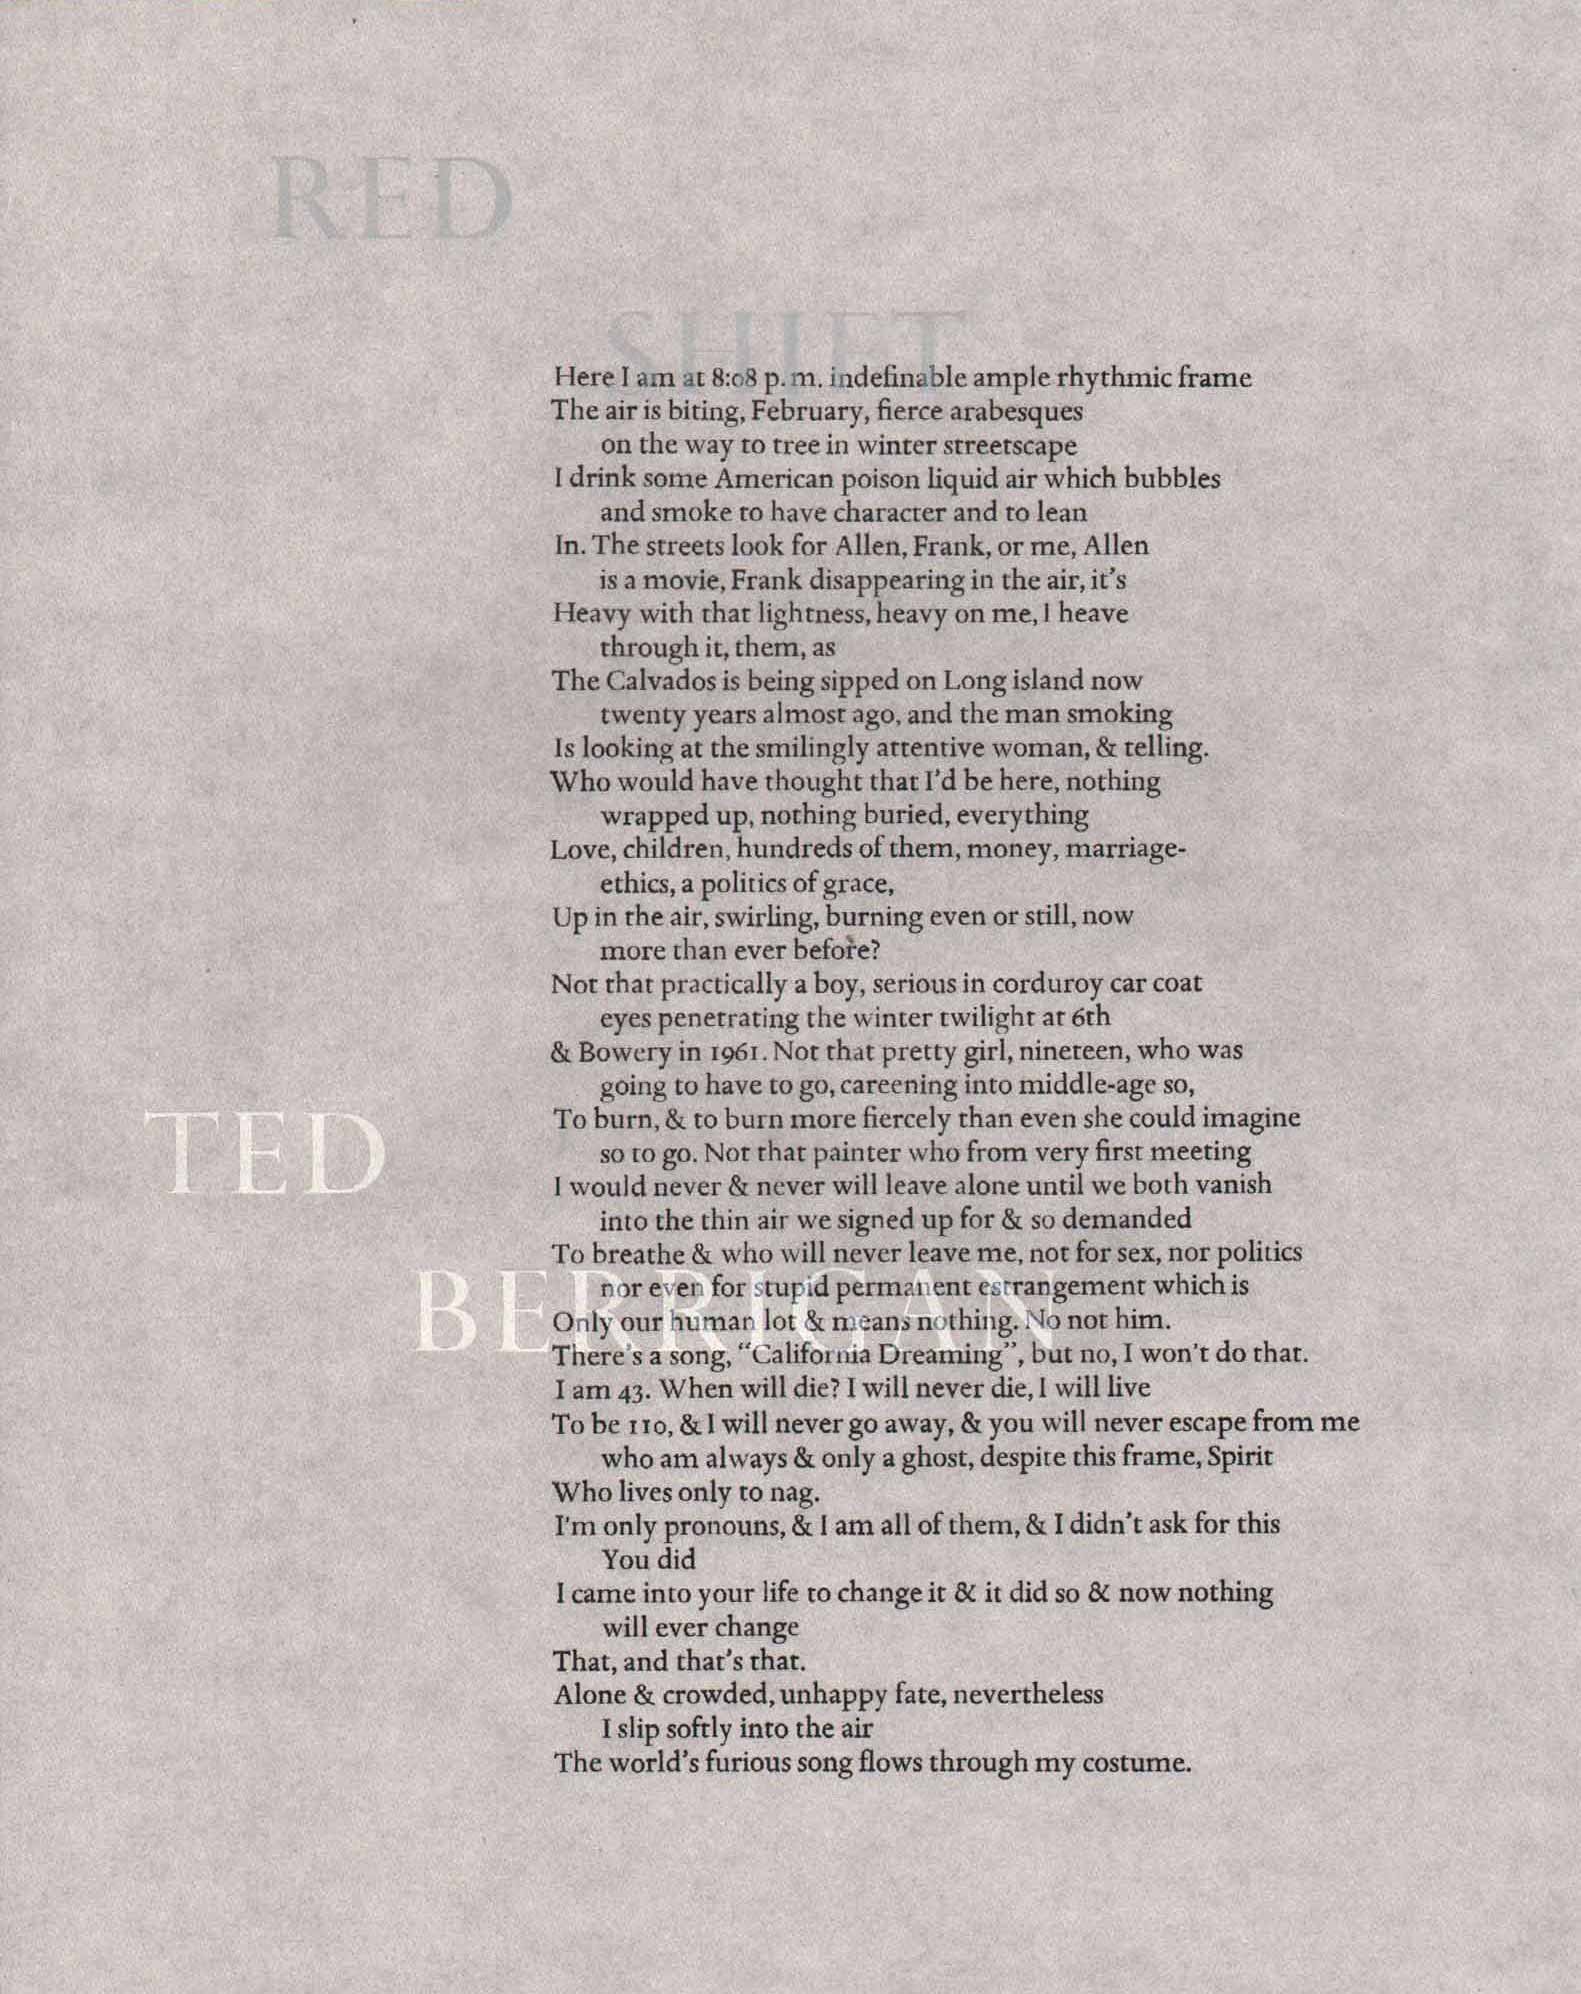 image of broadside by Ted Berrigan: Here I am at 8:08 p.m. indefinable ample rhythmic frame / The air is biting, February, fierce arabesques / on the way to tree in winter streetscape / I drink some American poison liquid air which bubbles / and smoke to have character and to lean / In. The streets look for Allen, Frank, or me, Allen / is a movie, Frank disappearing in the air, it's / Heavy with that lightness, heavy on me, I heave / through it, them, as / The calvados is being sipped on Long island now / twenty years ago, an dthe man smoking / Is looking at the smilingly attentive woman, and telling. / Who would have thought that I'd be here, nothing / wrapped up, nothing buried, everything / Love, children, hundreds of them, money, marriage- / ethics, a politics of grace, / Up in the air, swirling, burning even or still, now / more than ever before? / Not that practically a boy, serious in corduroy car coat / eyes penetrating the winter twilight at 6th / and Bowery in 1961. Not that pretty girl, nineteen, who was / going to have to go, careening into middle-age so, / To burn, and to burn more fiercely than even she could imagine / so to go. Not that painter who from very first meeting / I would never and never will leave alone until we both vanish / into the thin air we signed up for and so demanded / To breathe and who will never leave me, not for sex, nor politics / nor even for stupid permanent estrangement which is / Only our human lot and means nothing. No not him. / There's a song, California Dreaming, but no, I won't do that. / I am 43. When will die? I will never die, I will live / To be 110, and I will never go away, and you will never escape from me / who am always and only a ghost, despite this frame, Spirit / Who lives only to nag. / I'm only pronouns, and I am all of them, and I didn't ask for this / You did / I came into your live to change it and it did so and now nothing / will ever change / That, and that's that. / Alone and crowded, unhappy fate, nevertheless / I slip softly into the air / The world's furious song flows through my costume.